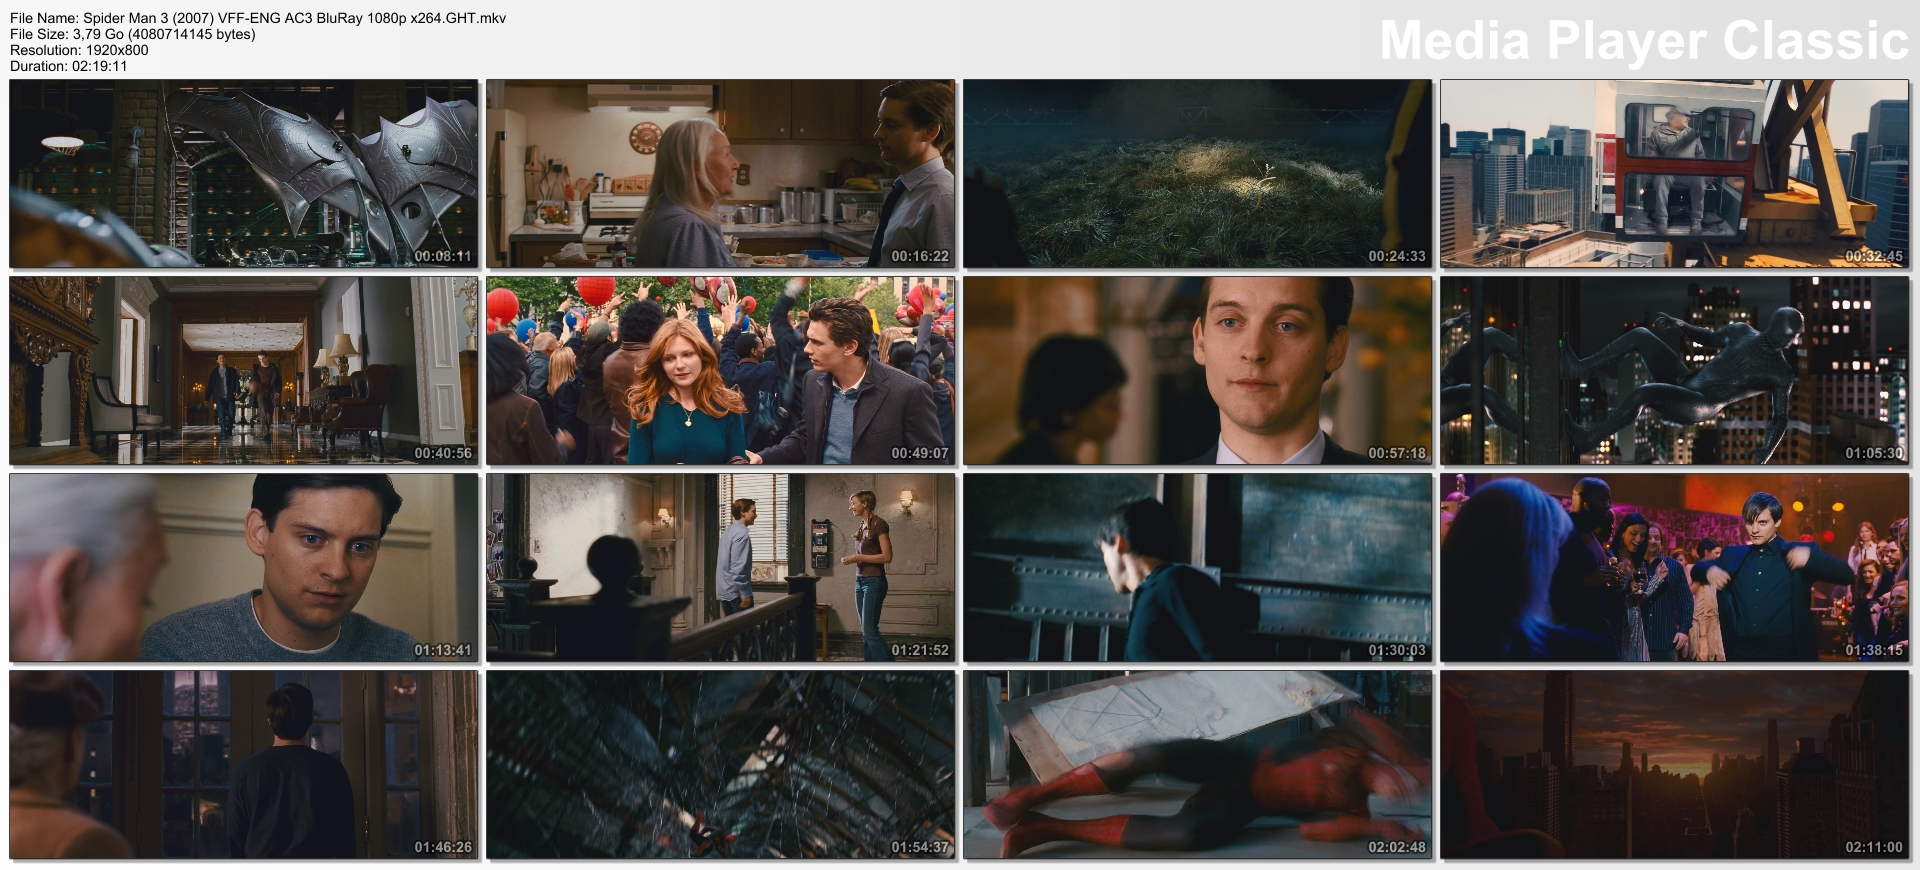 Spider Man 3 (2007) VFF-ENG AC3 BluRay 1080p x264